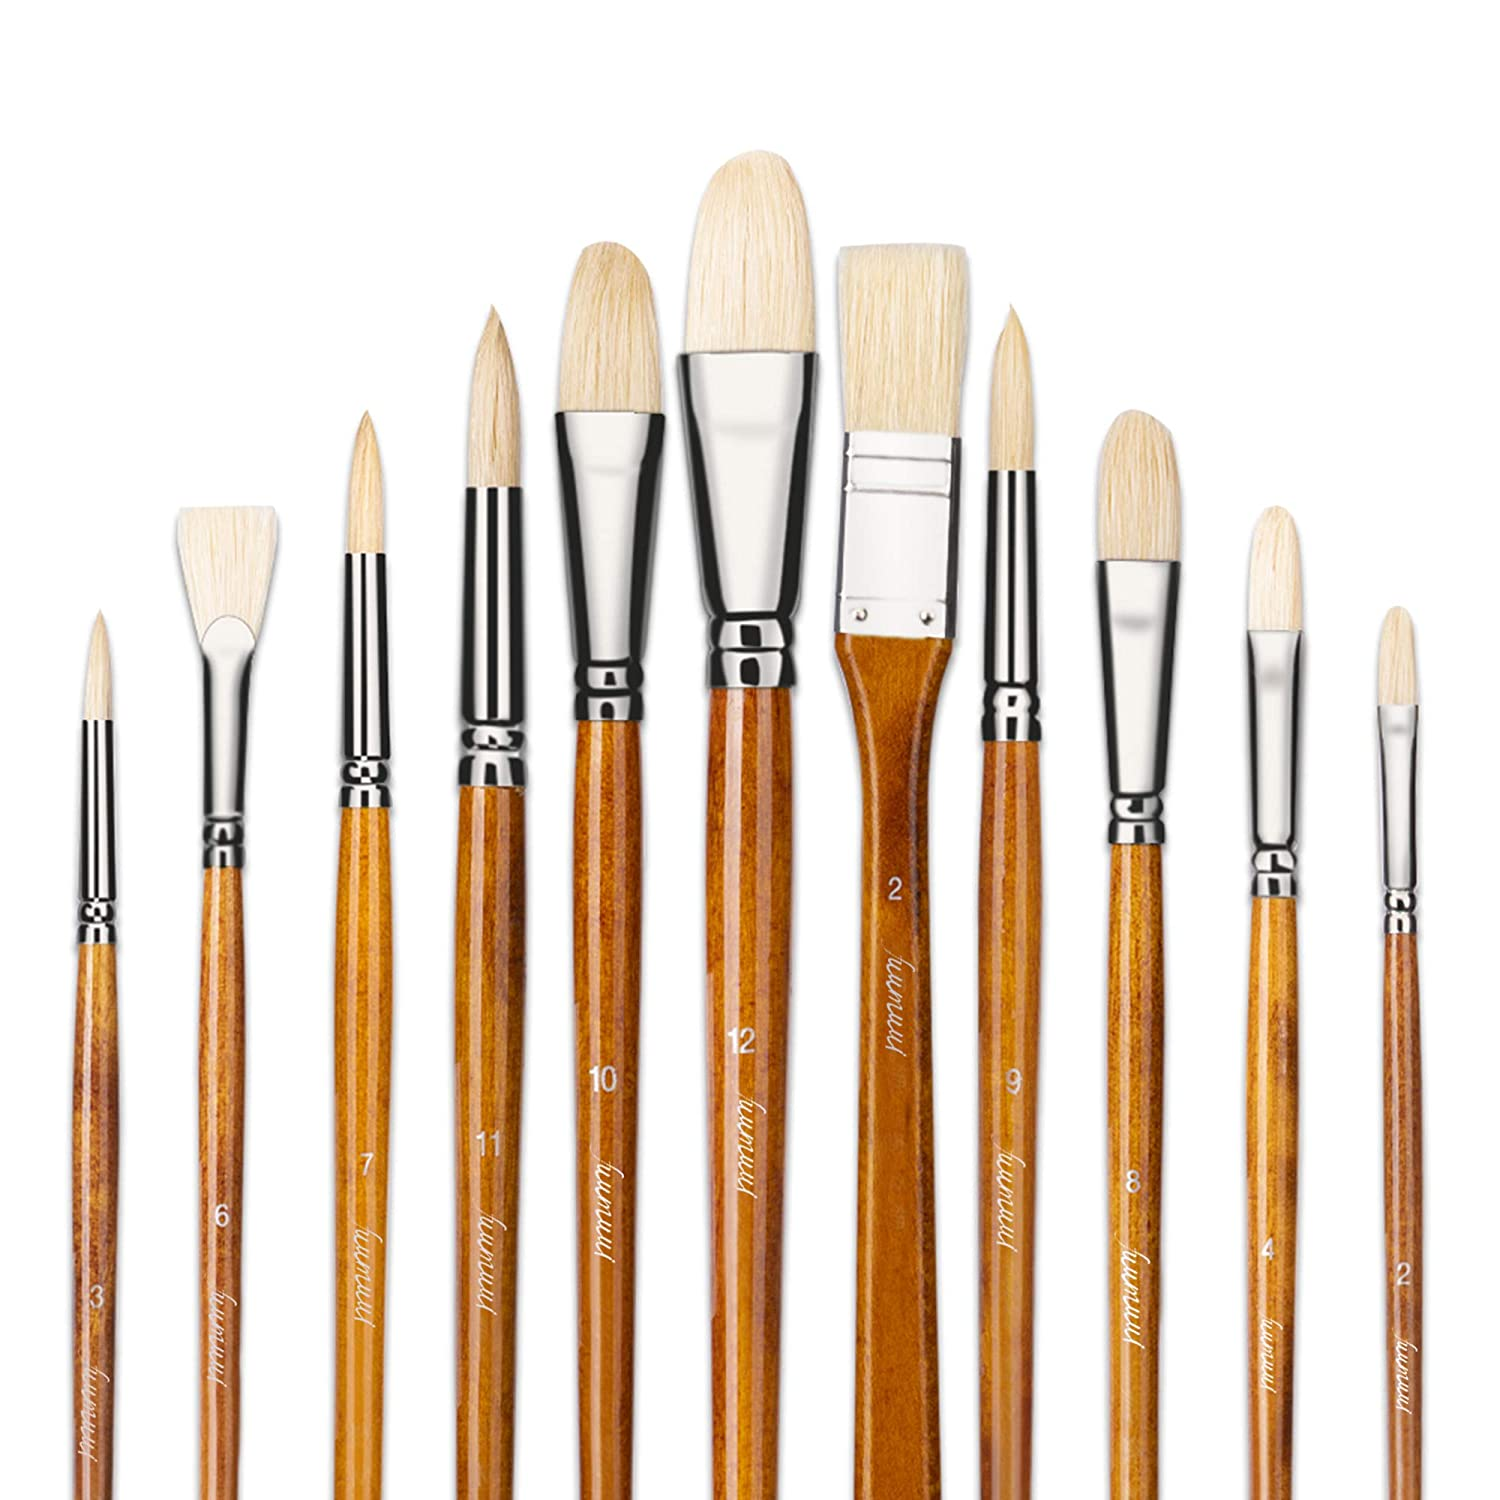 100/% Natural Chungking Hog Bristle Filbert Oil Paint Brush for Watercolor Acrylic Gouache Painting Art Supplies Paintbrushes 6pcs Artist Paint Brushes Set